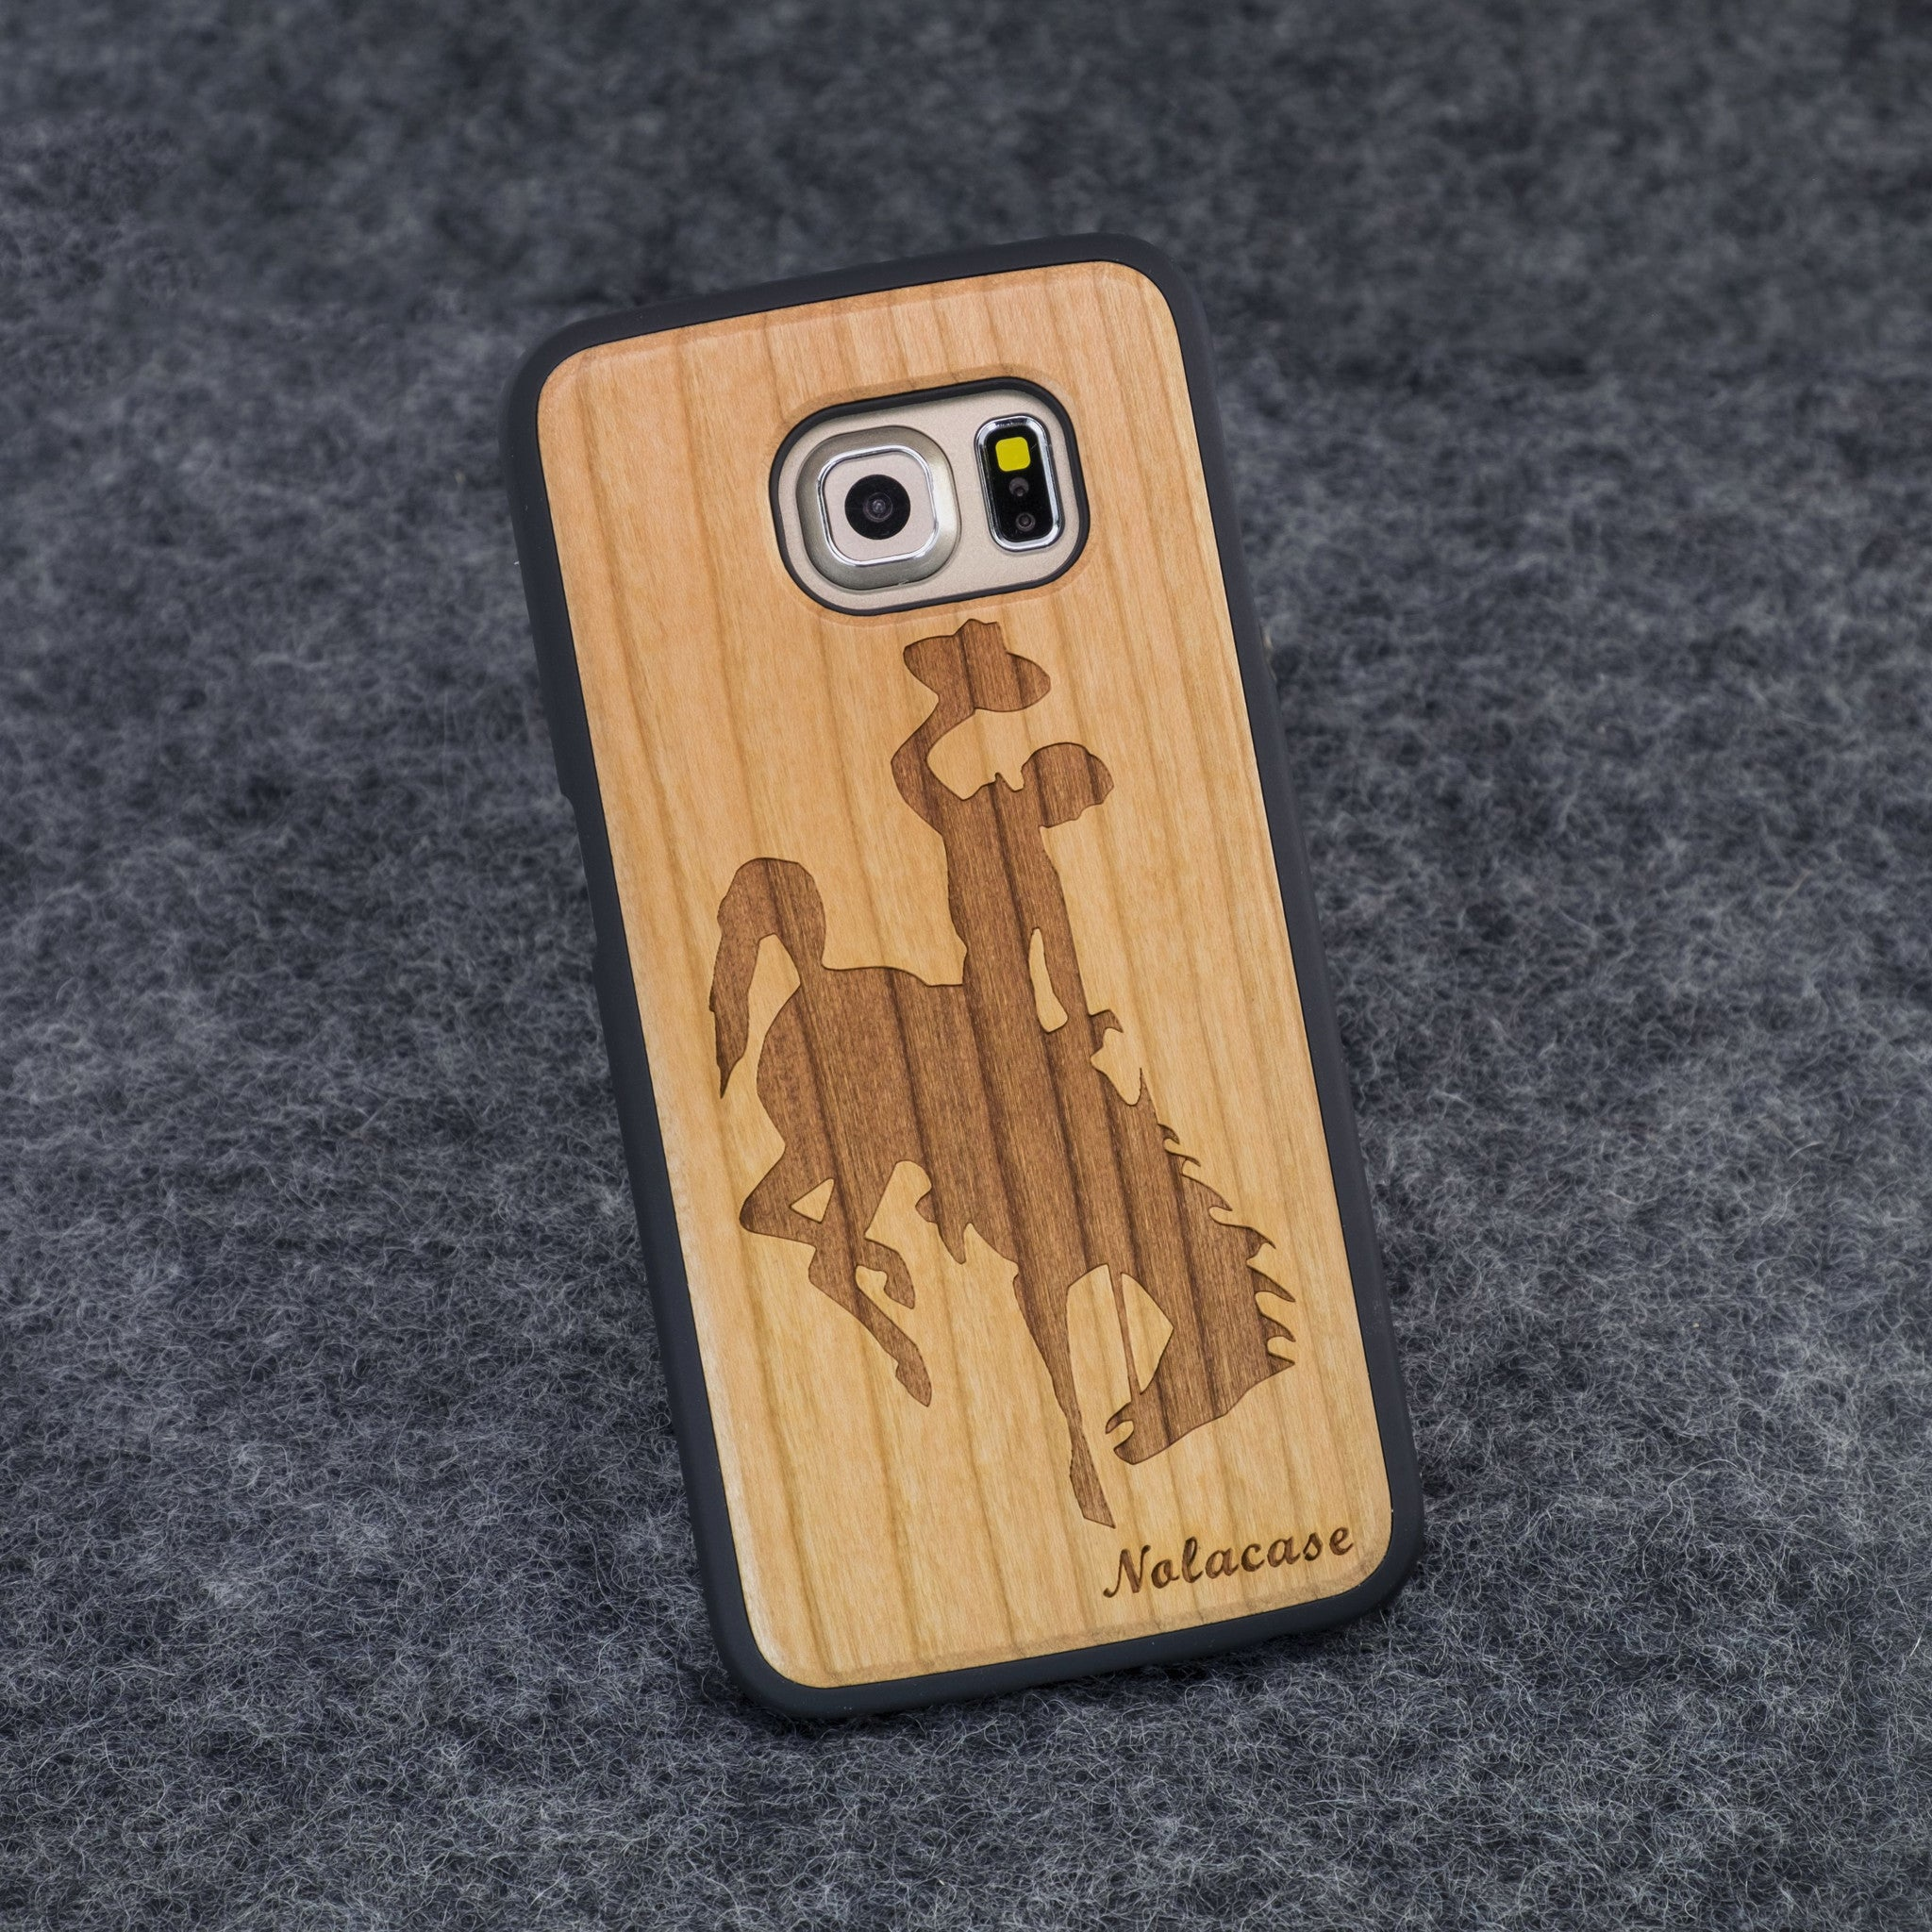 Samsung S6 Edge Rodeo Wood Case - NOLACASE